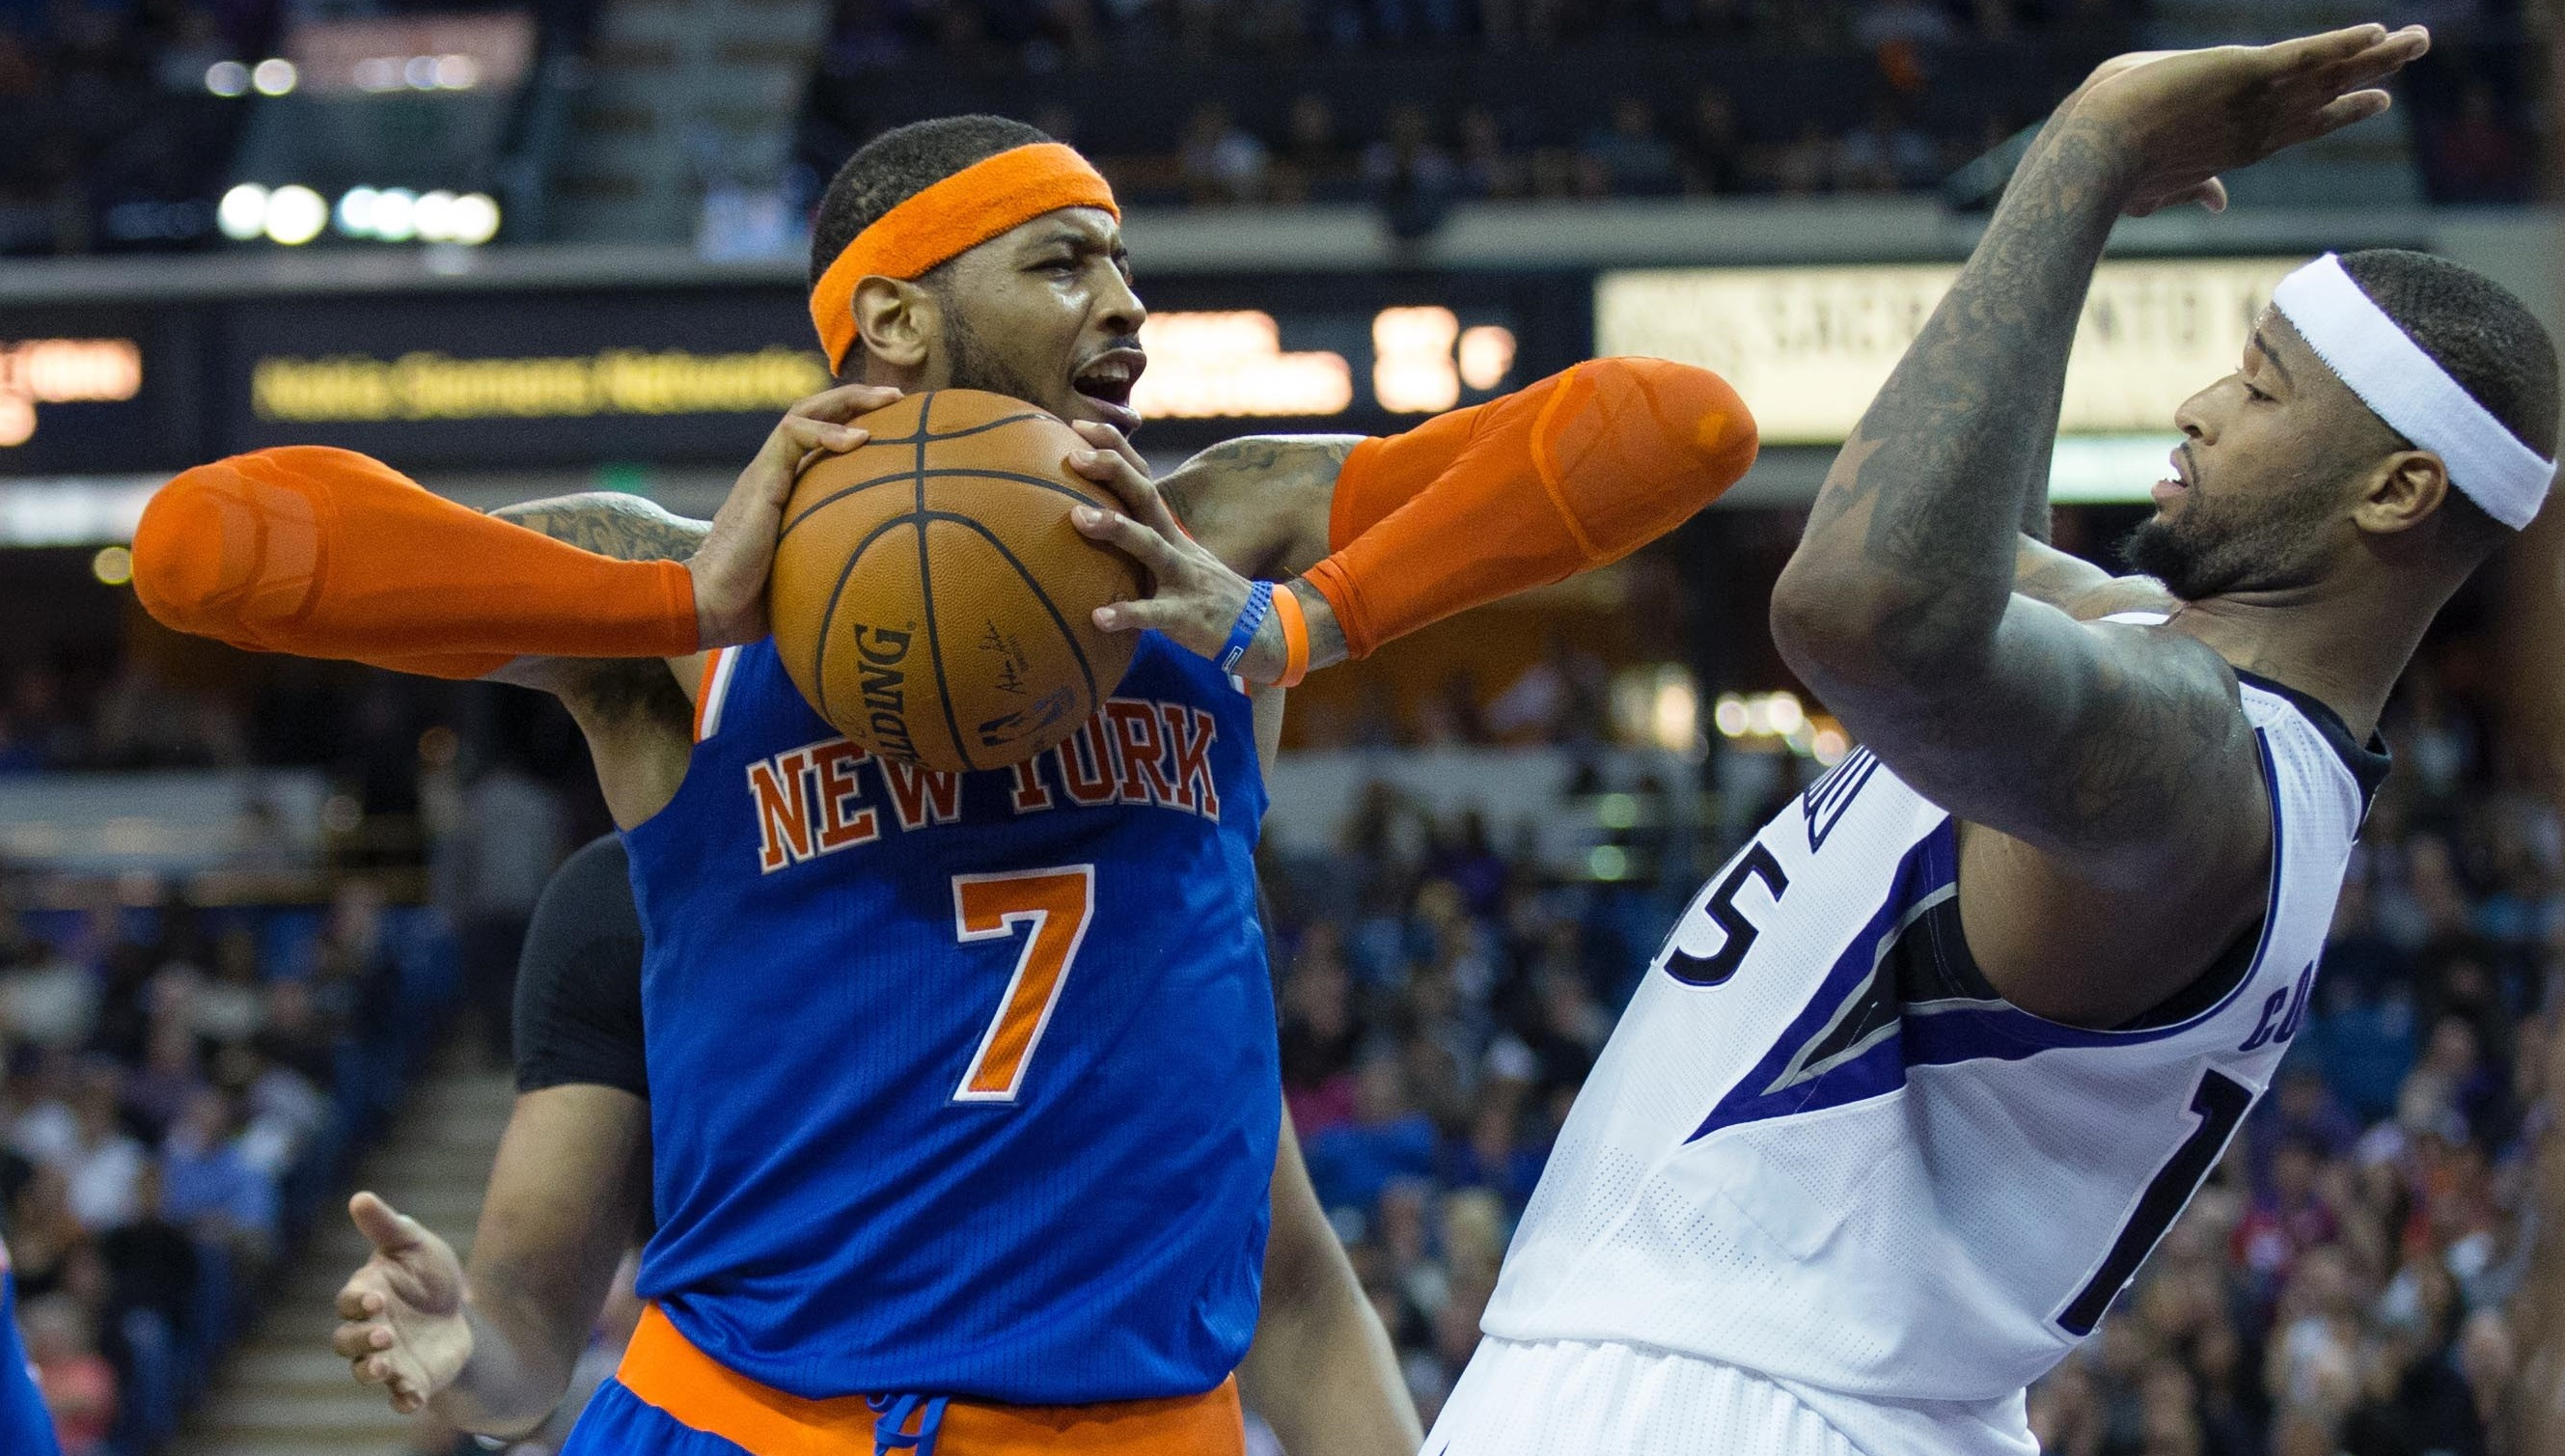 Mar 26, 2014; Sacramento, CA, USA; New York Knicks forward Carmelo Anthony (7) controls the ball against Sacramento Kings center DeMarcus Cousins (15) during the fourth quarter at Sleep Train Arena. The New York Knicks defeated the Sacramento Kings 107-99. Mandatory Credit: Kelley L Cox-USA TODAY Sports